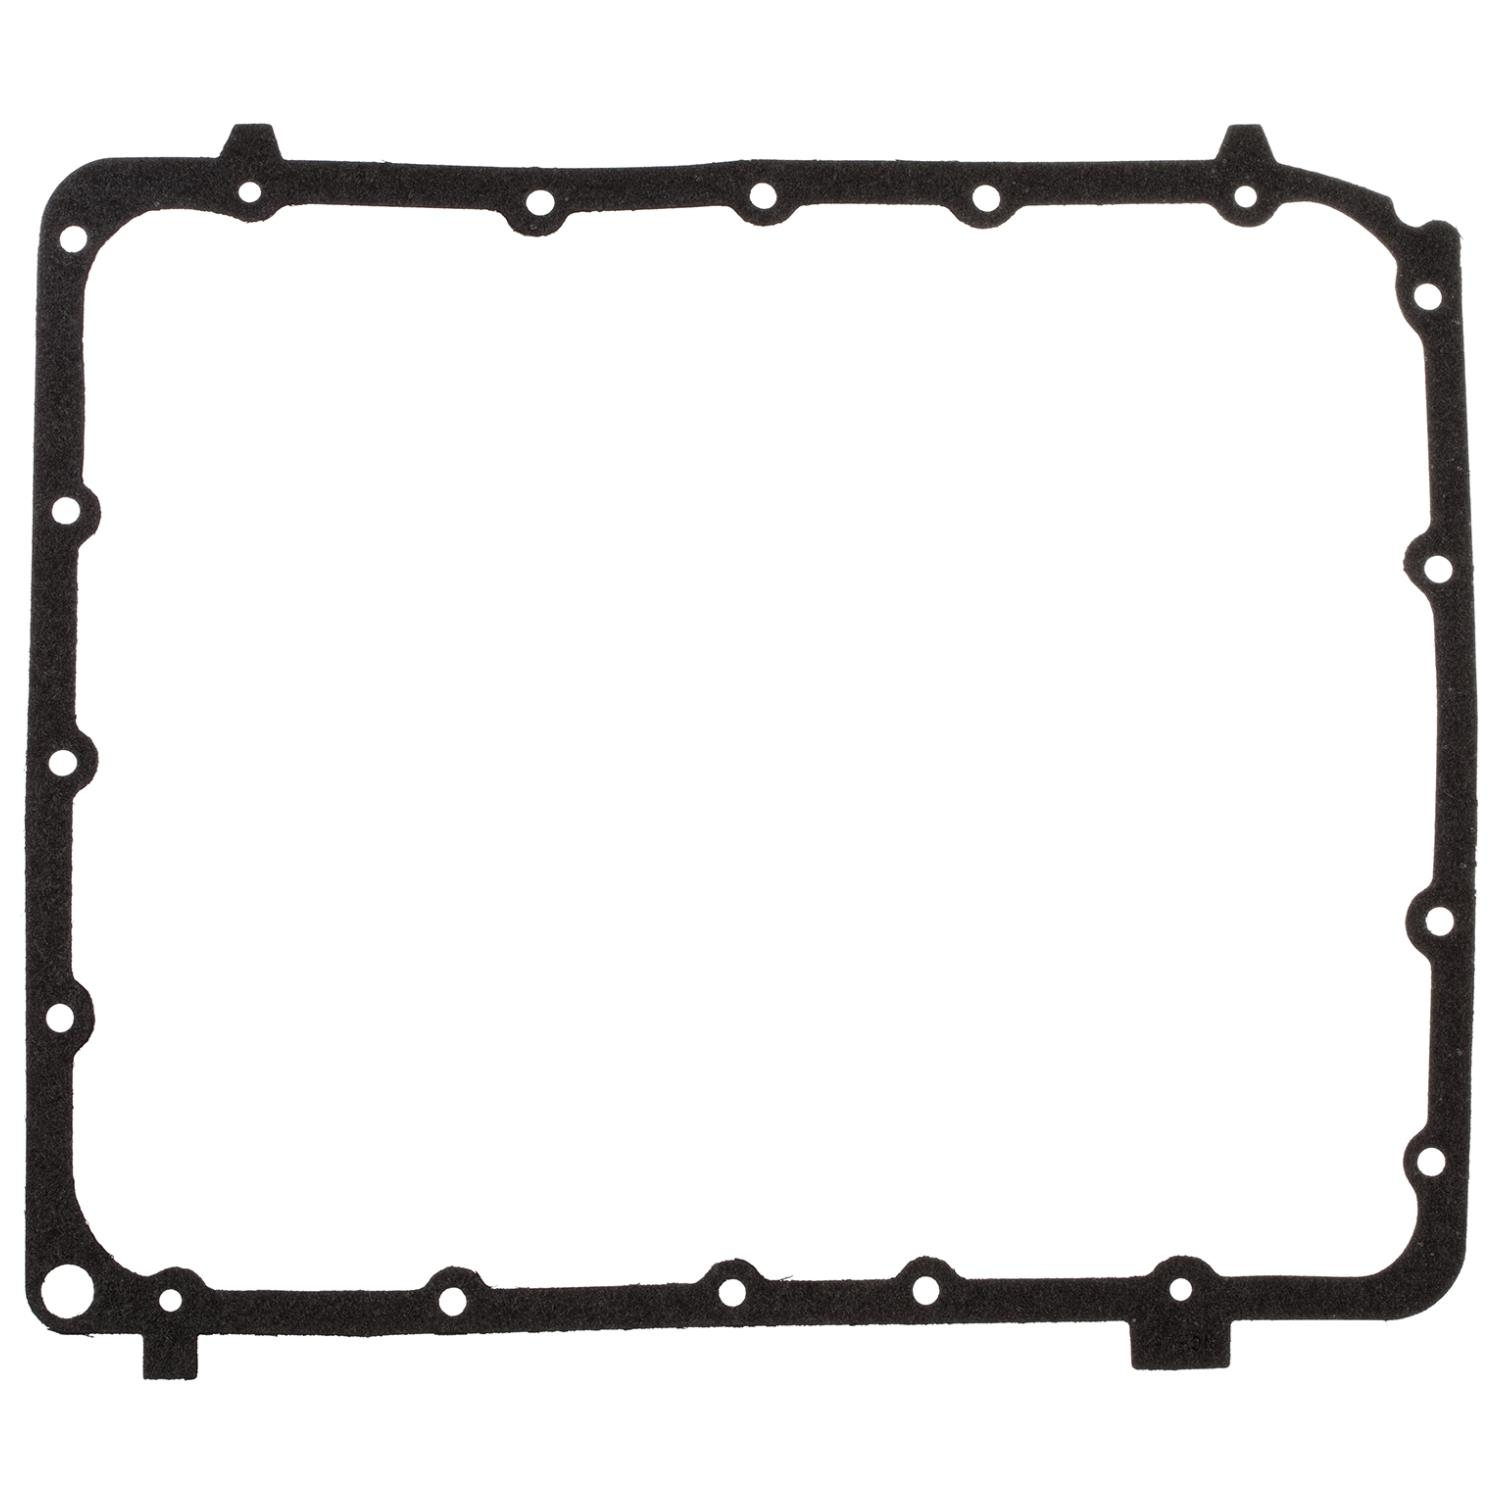 ATP Automotive NG-15 Oil Pan Gasket